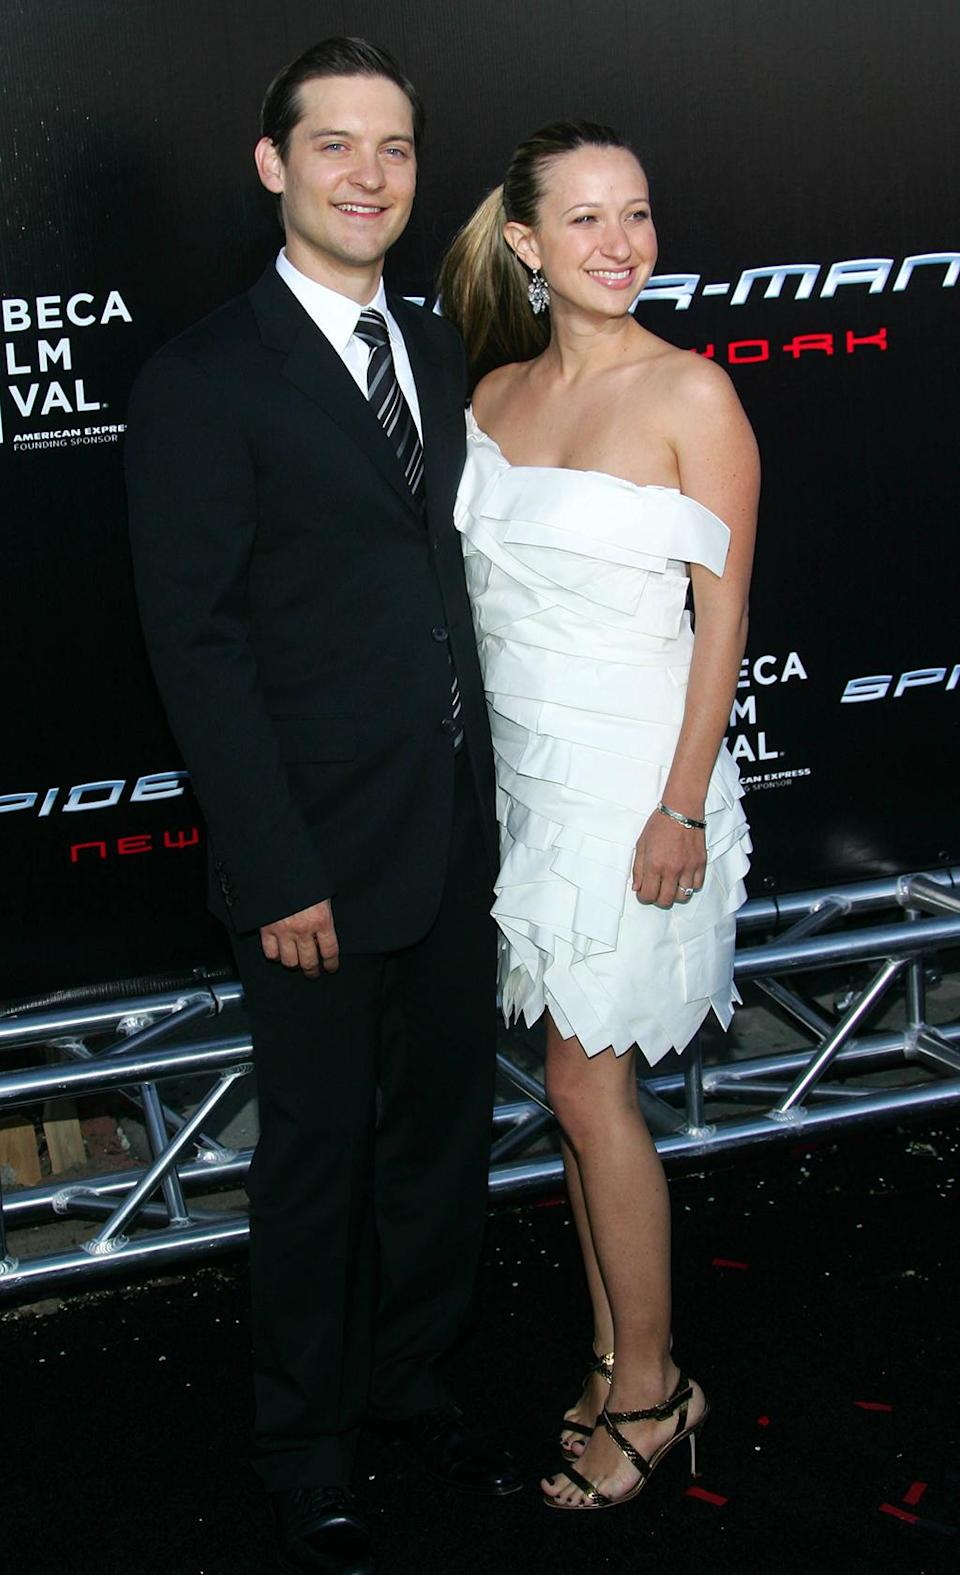 <p>Maguire brought future-wife Jennifer Meyer to the New York premiere of <em>Spider-Man 3</em> on April 30, 2007. It would be the actor's final go-round as the web-slinger. (Photo: Evan Agostini/Getty Images) </p>